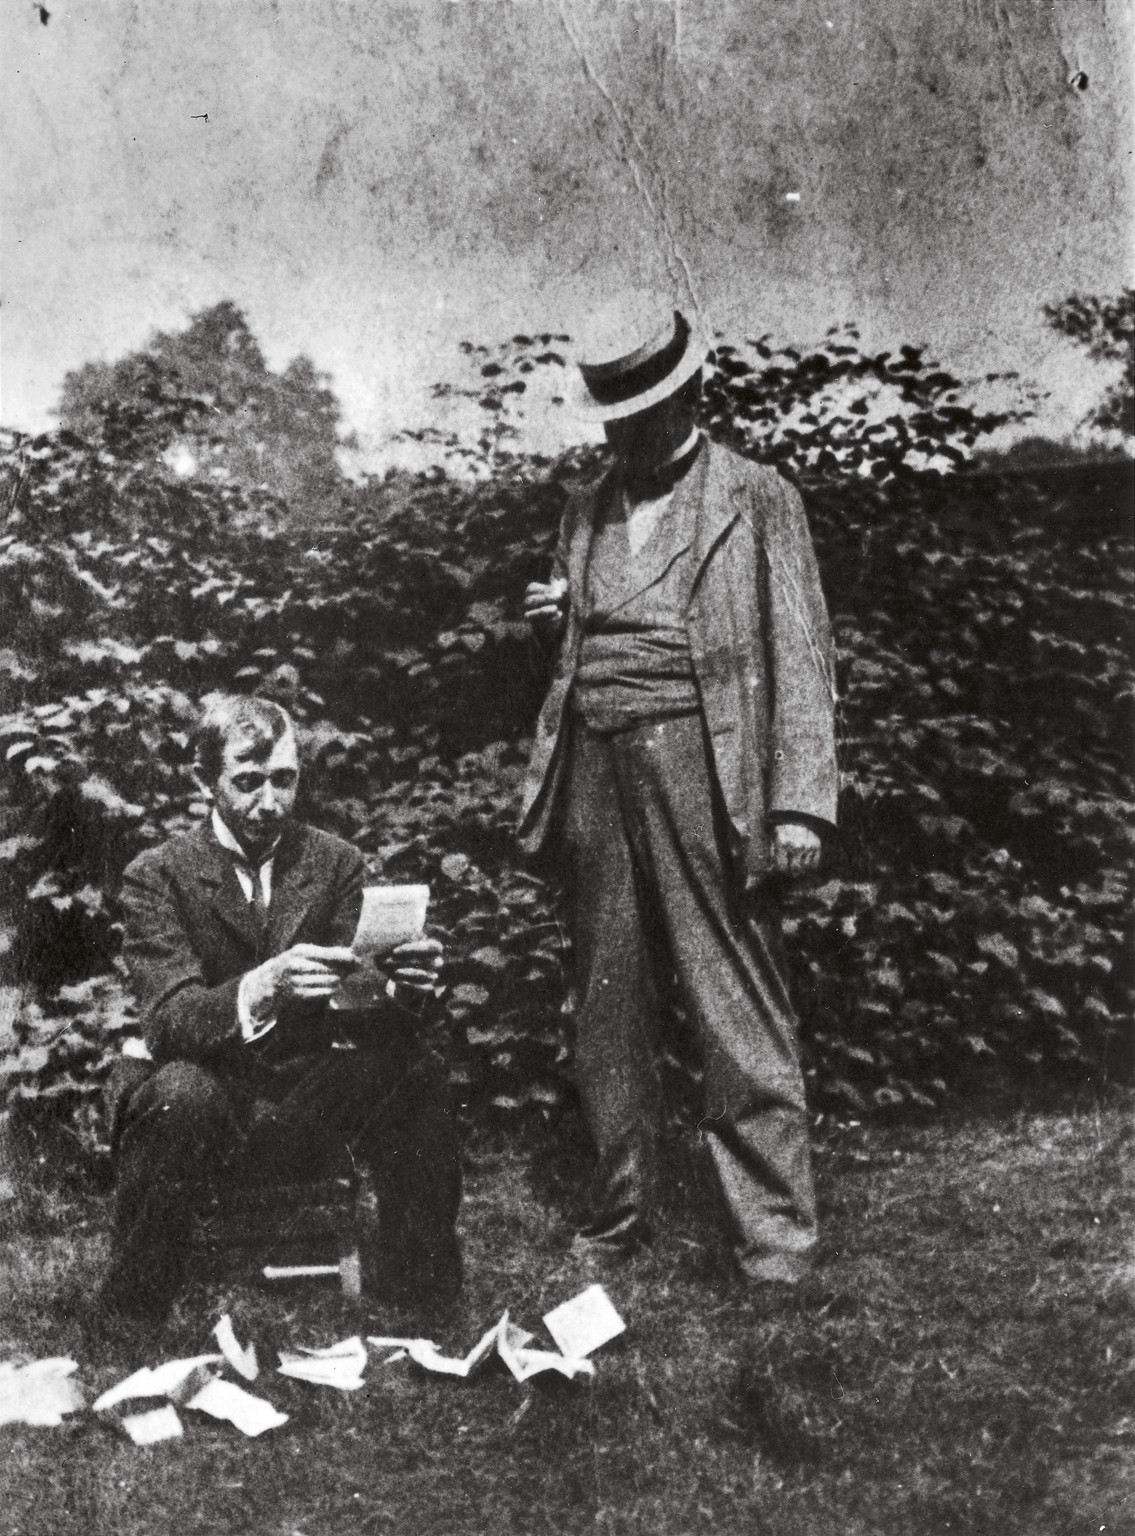 Spencer Gore (L) and Walter Sickert (R), reading press clippings after the first Camden Town Group exhibition, 1911